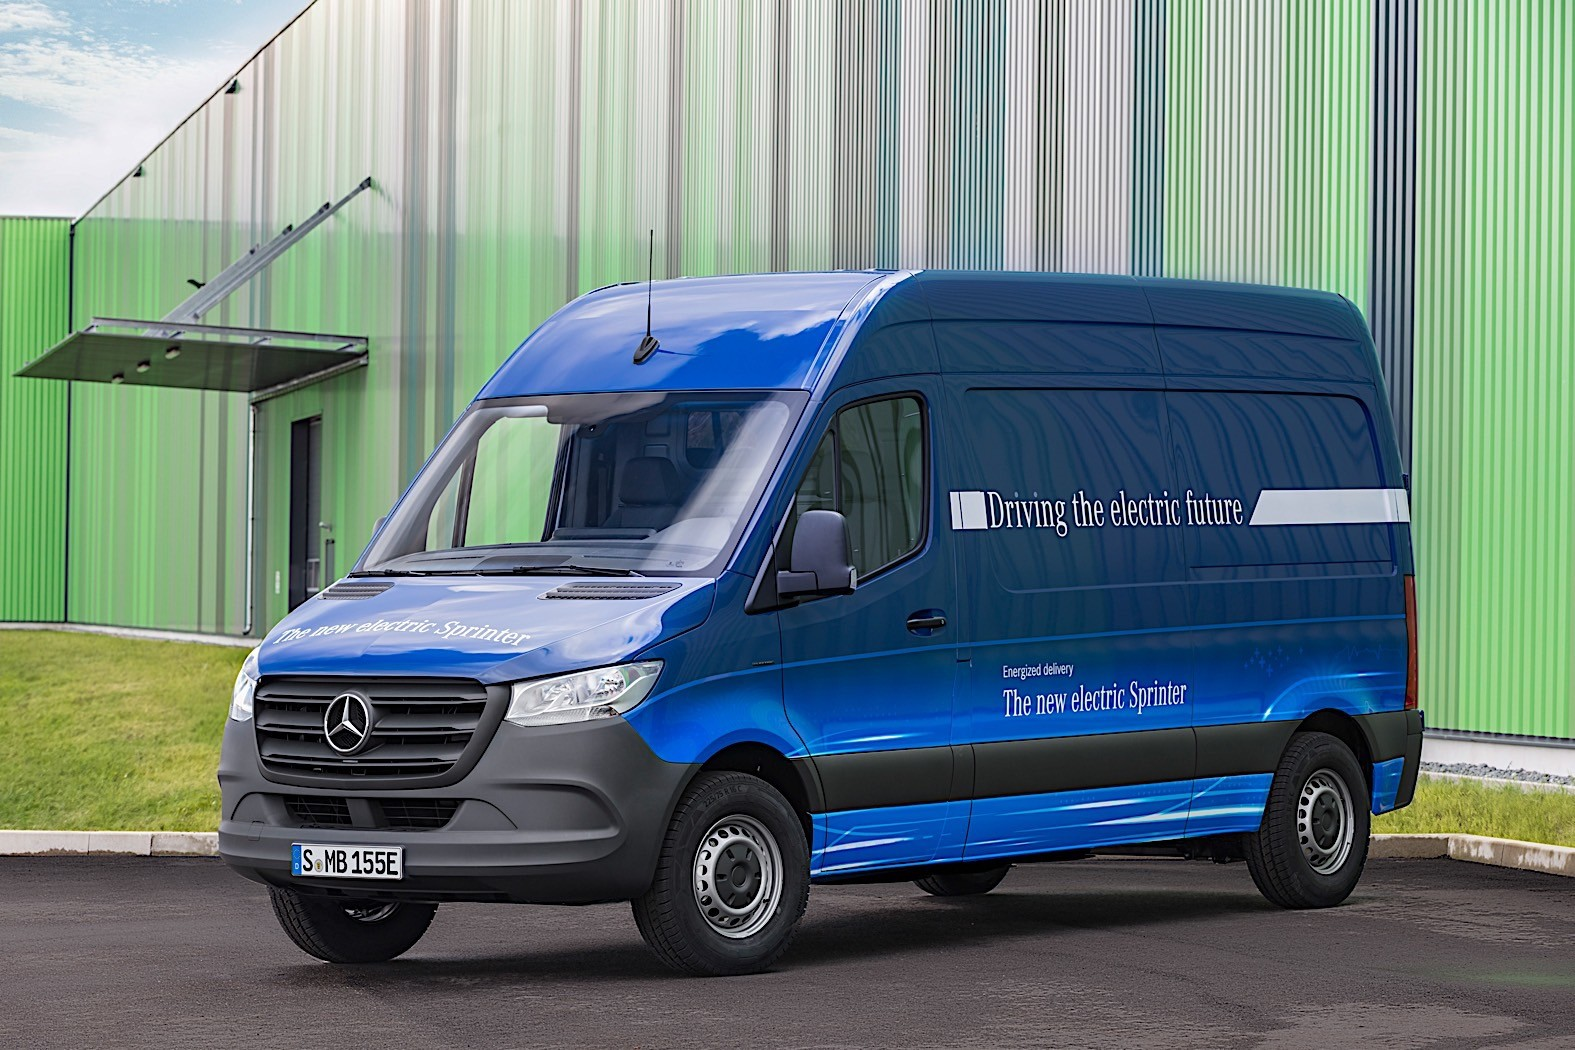 2018 mercedes-benz sprinter spied testing in winter conditions, we